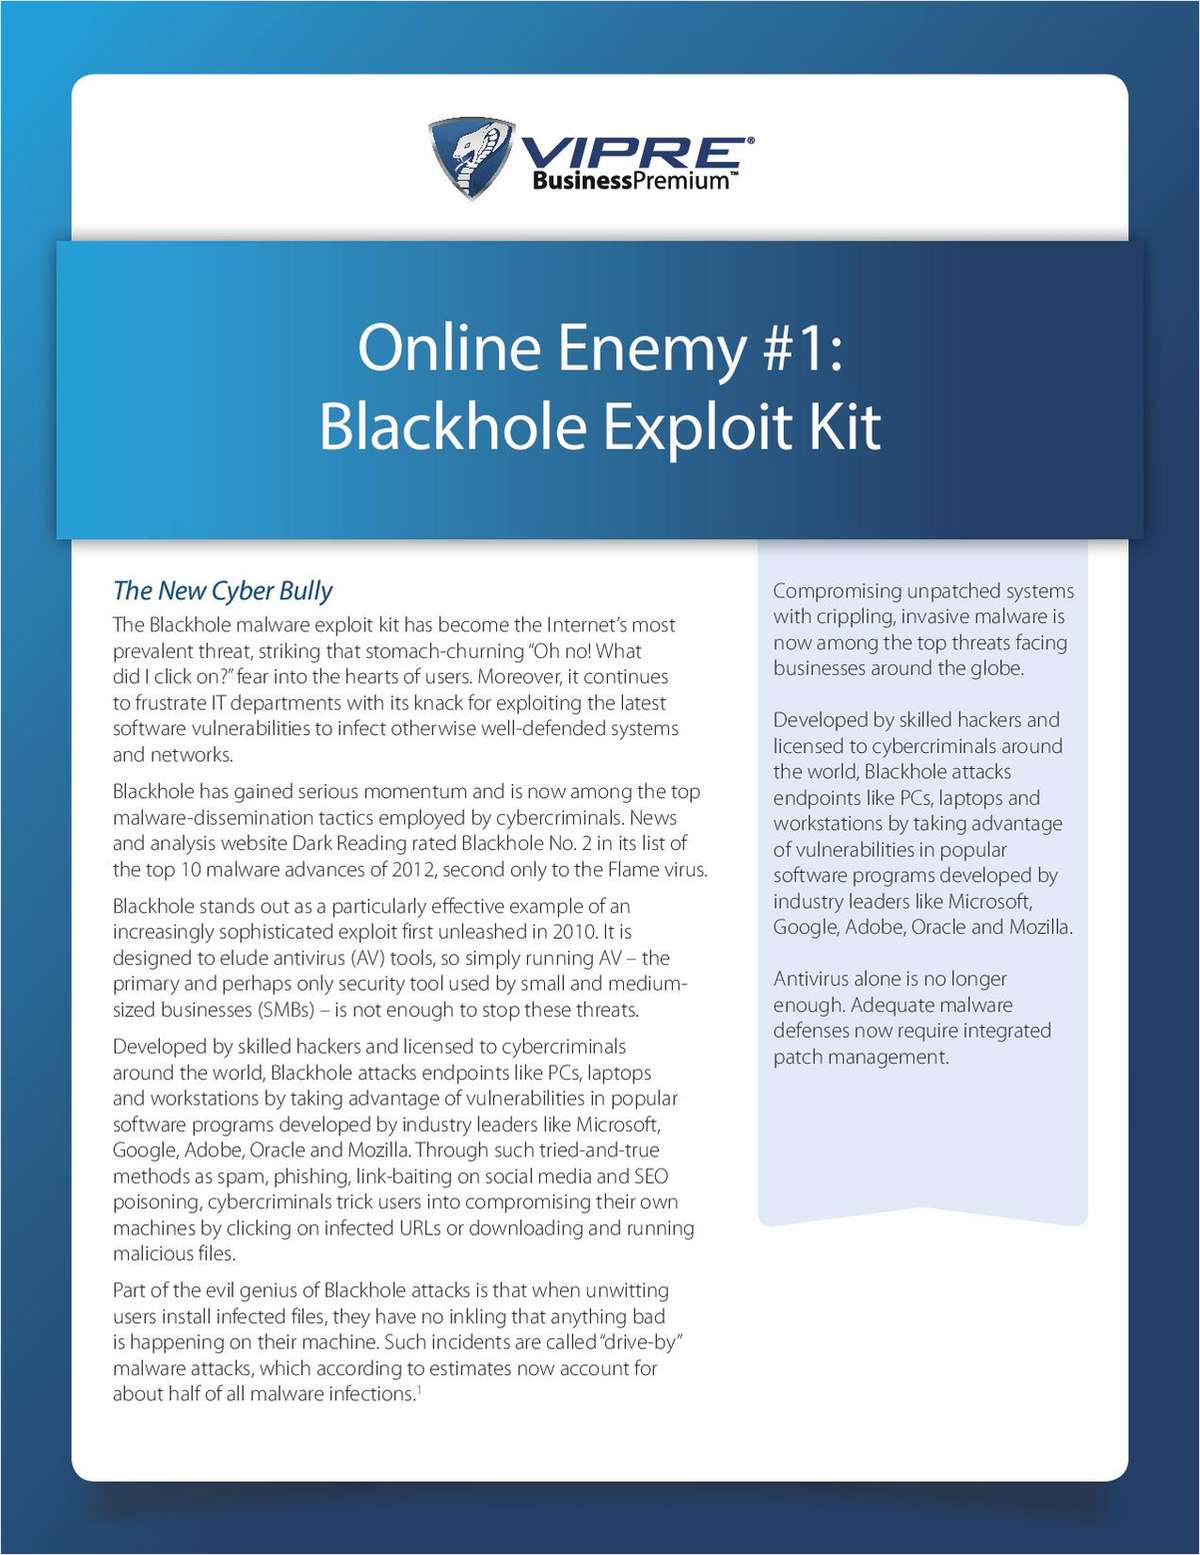 Online Enemy #1: Blackhole Exploit Kit